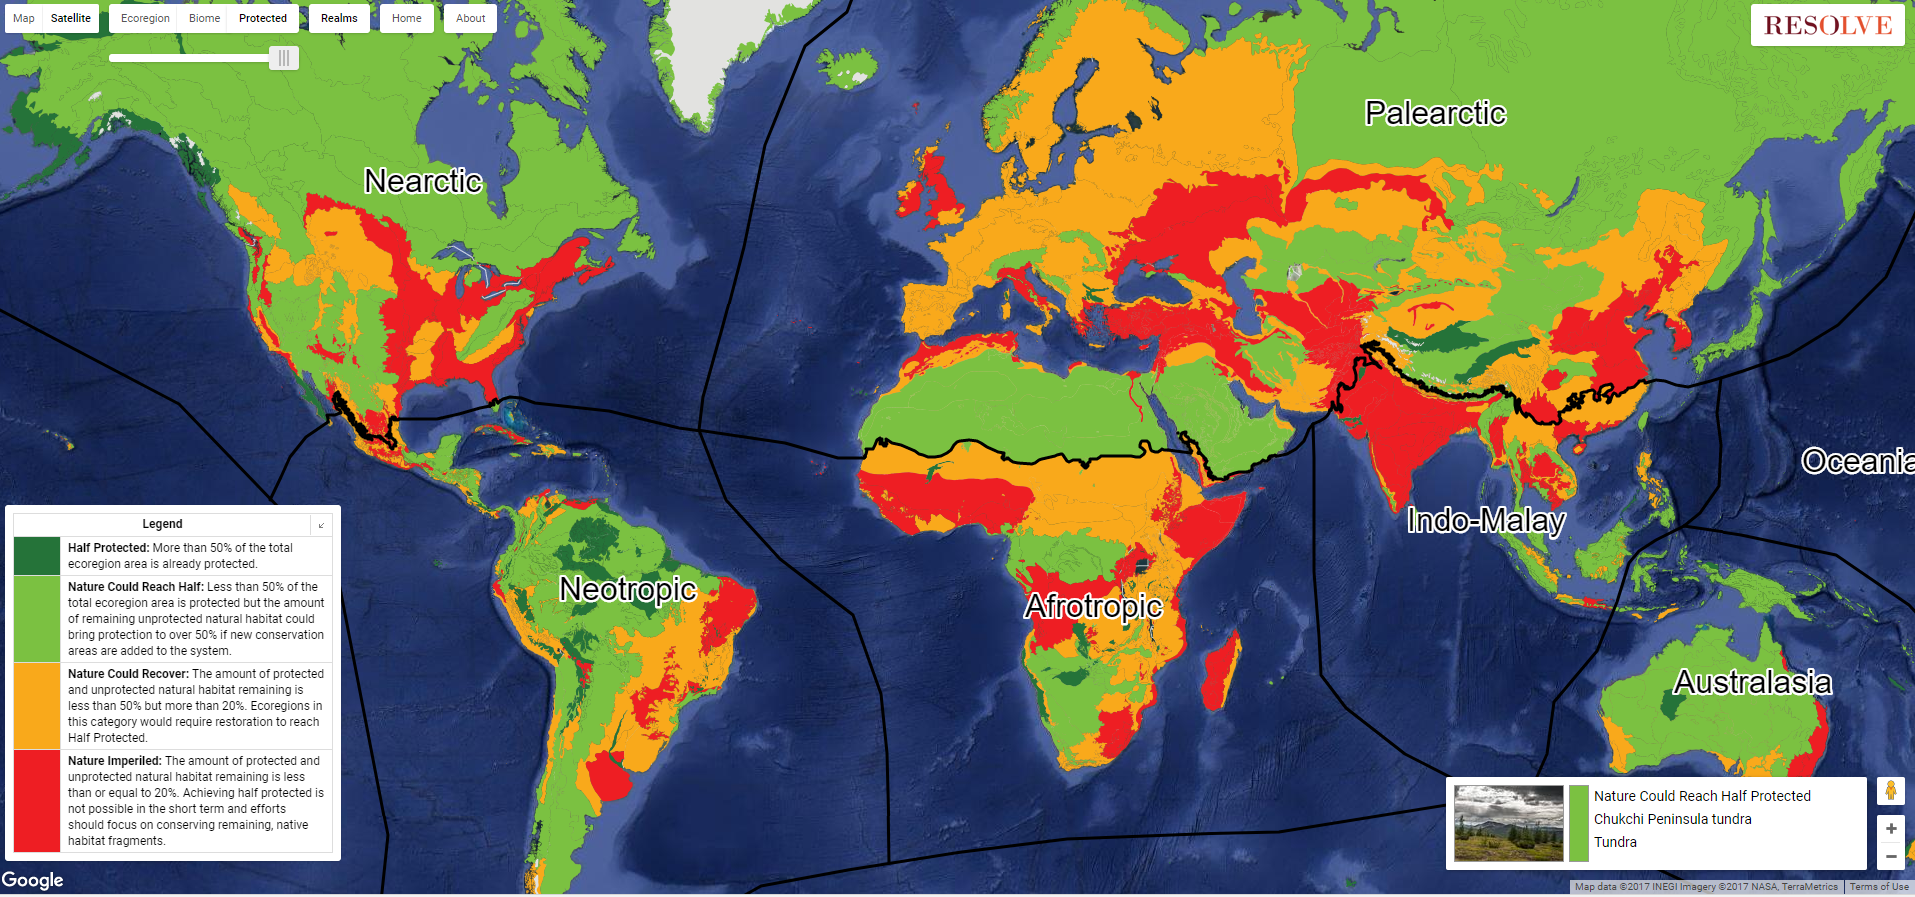 An ecoregion-based approach to tracking progress toward Half Earth. From Resolve. http://ecoregions2017.appspot.com/